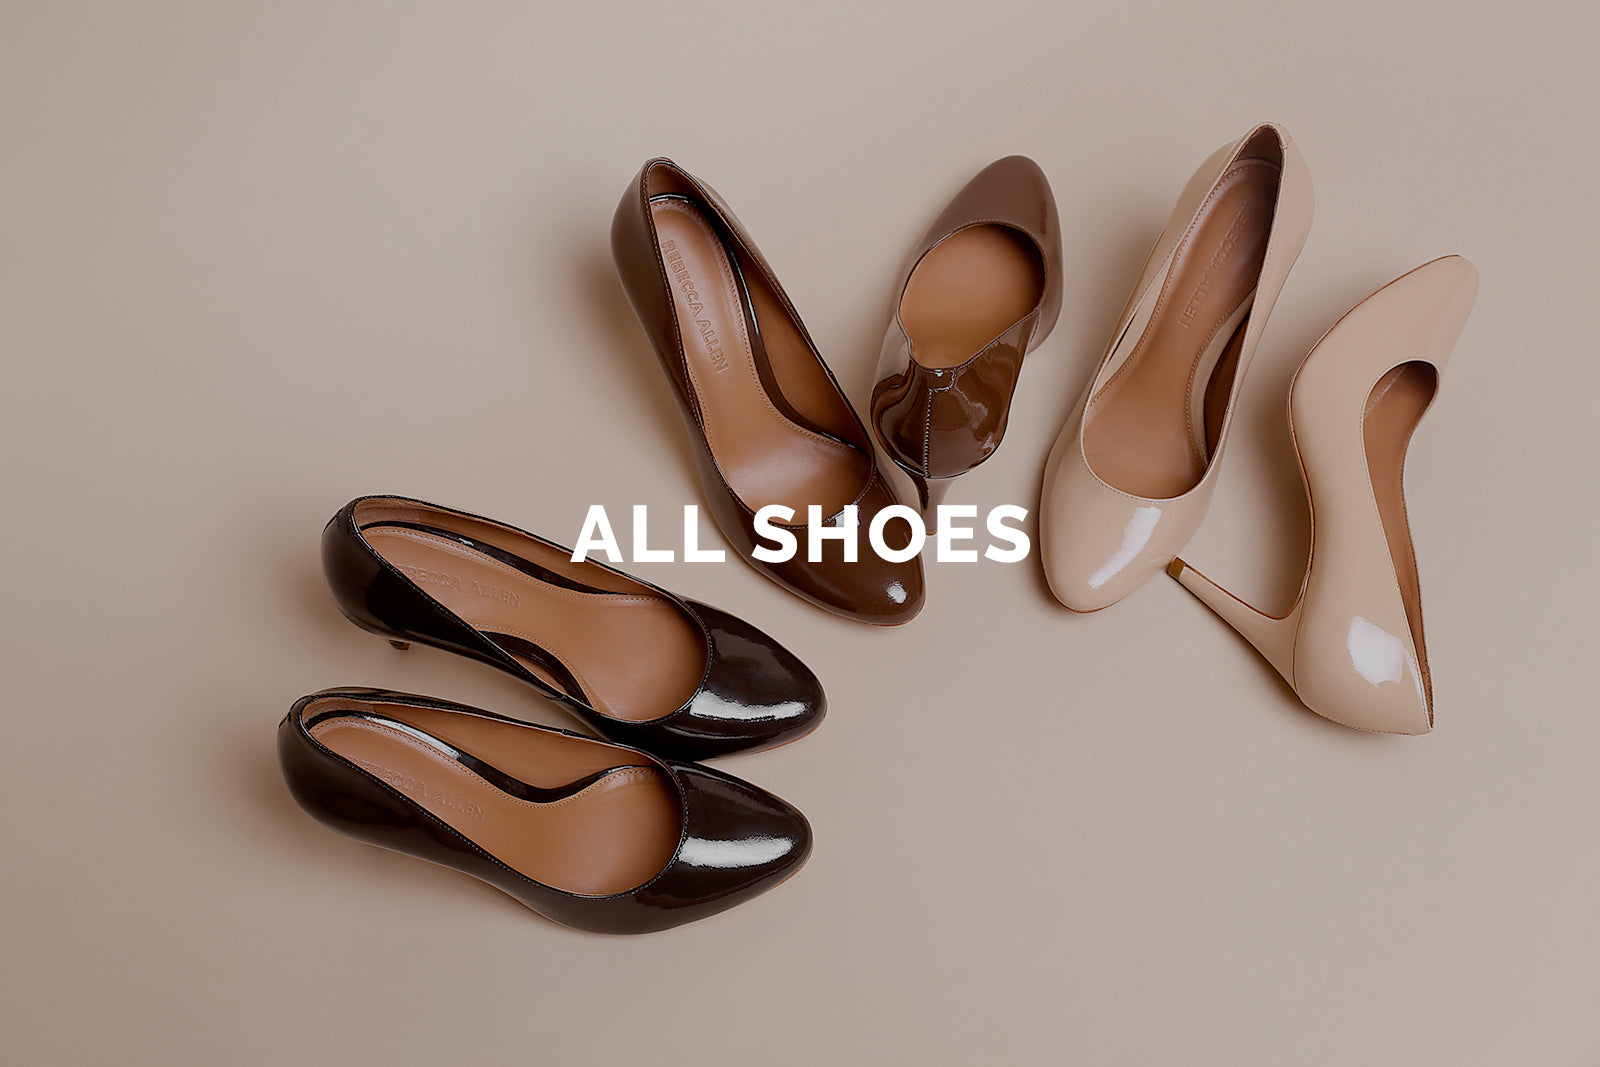 nude pump shoes in various shades